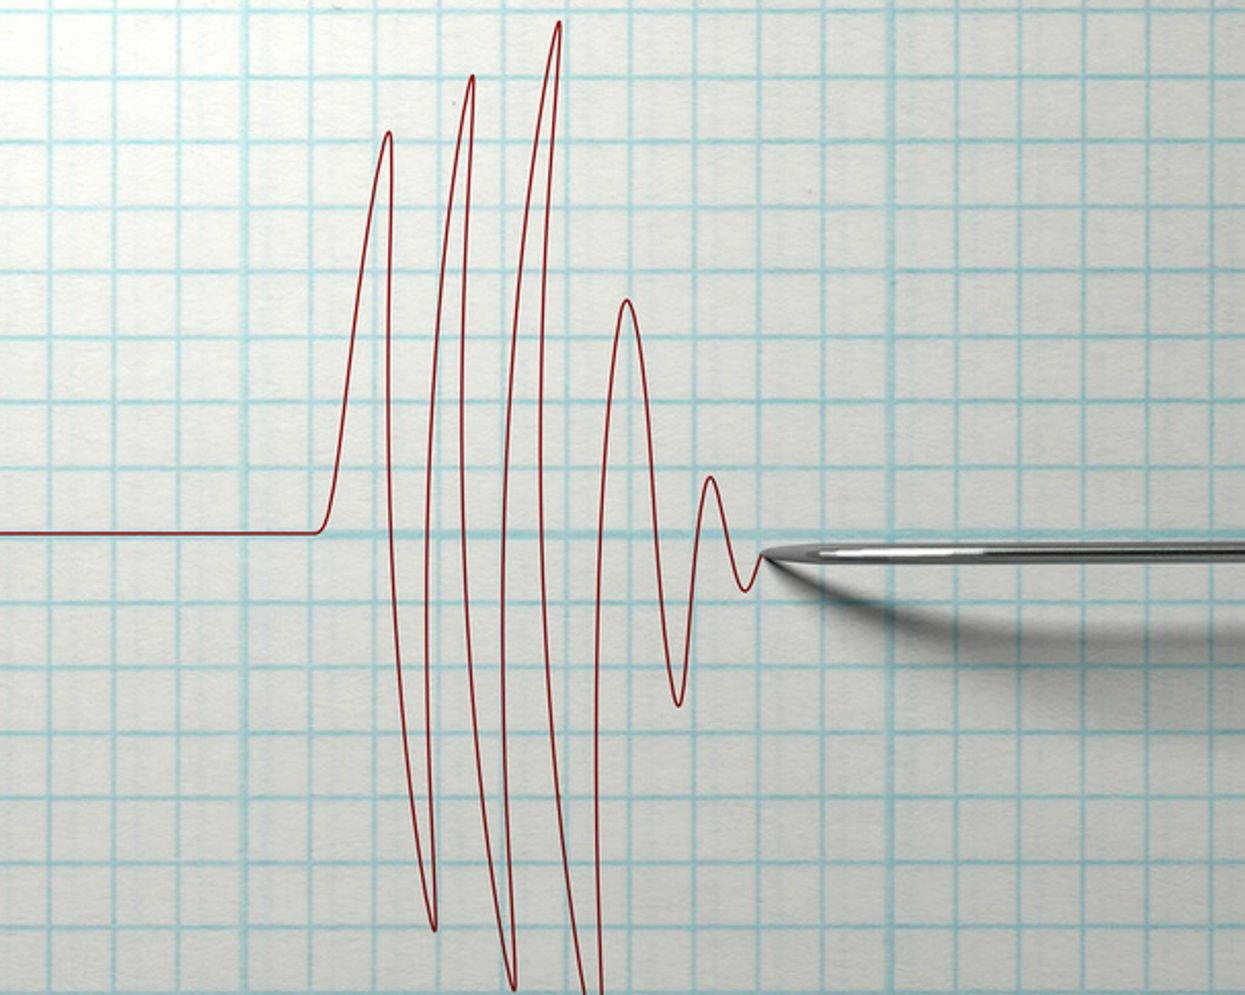 How to outsmart a lie detector test